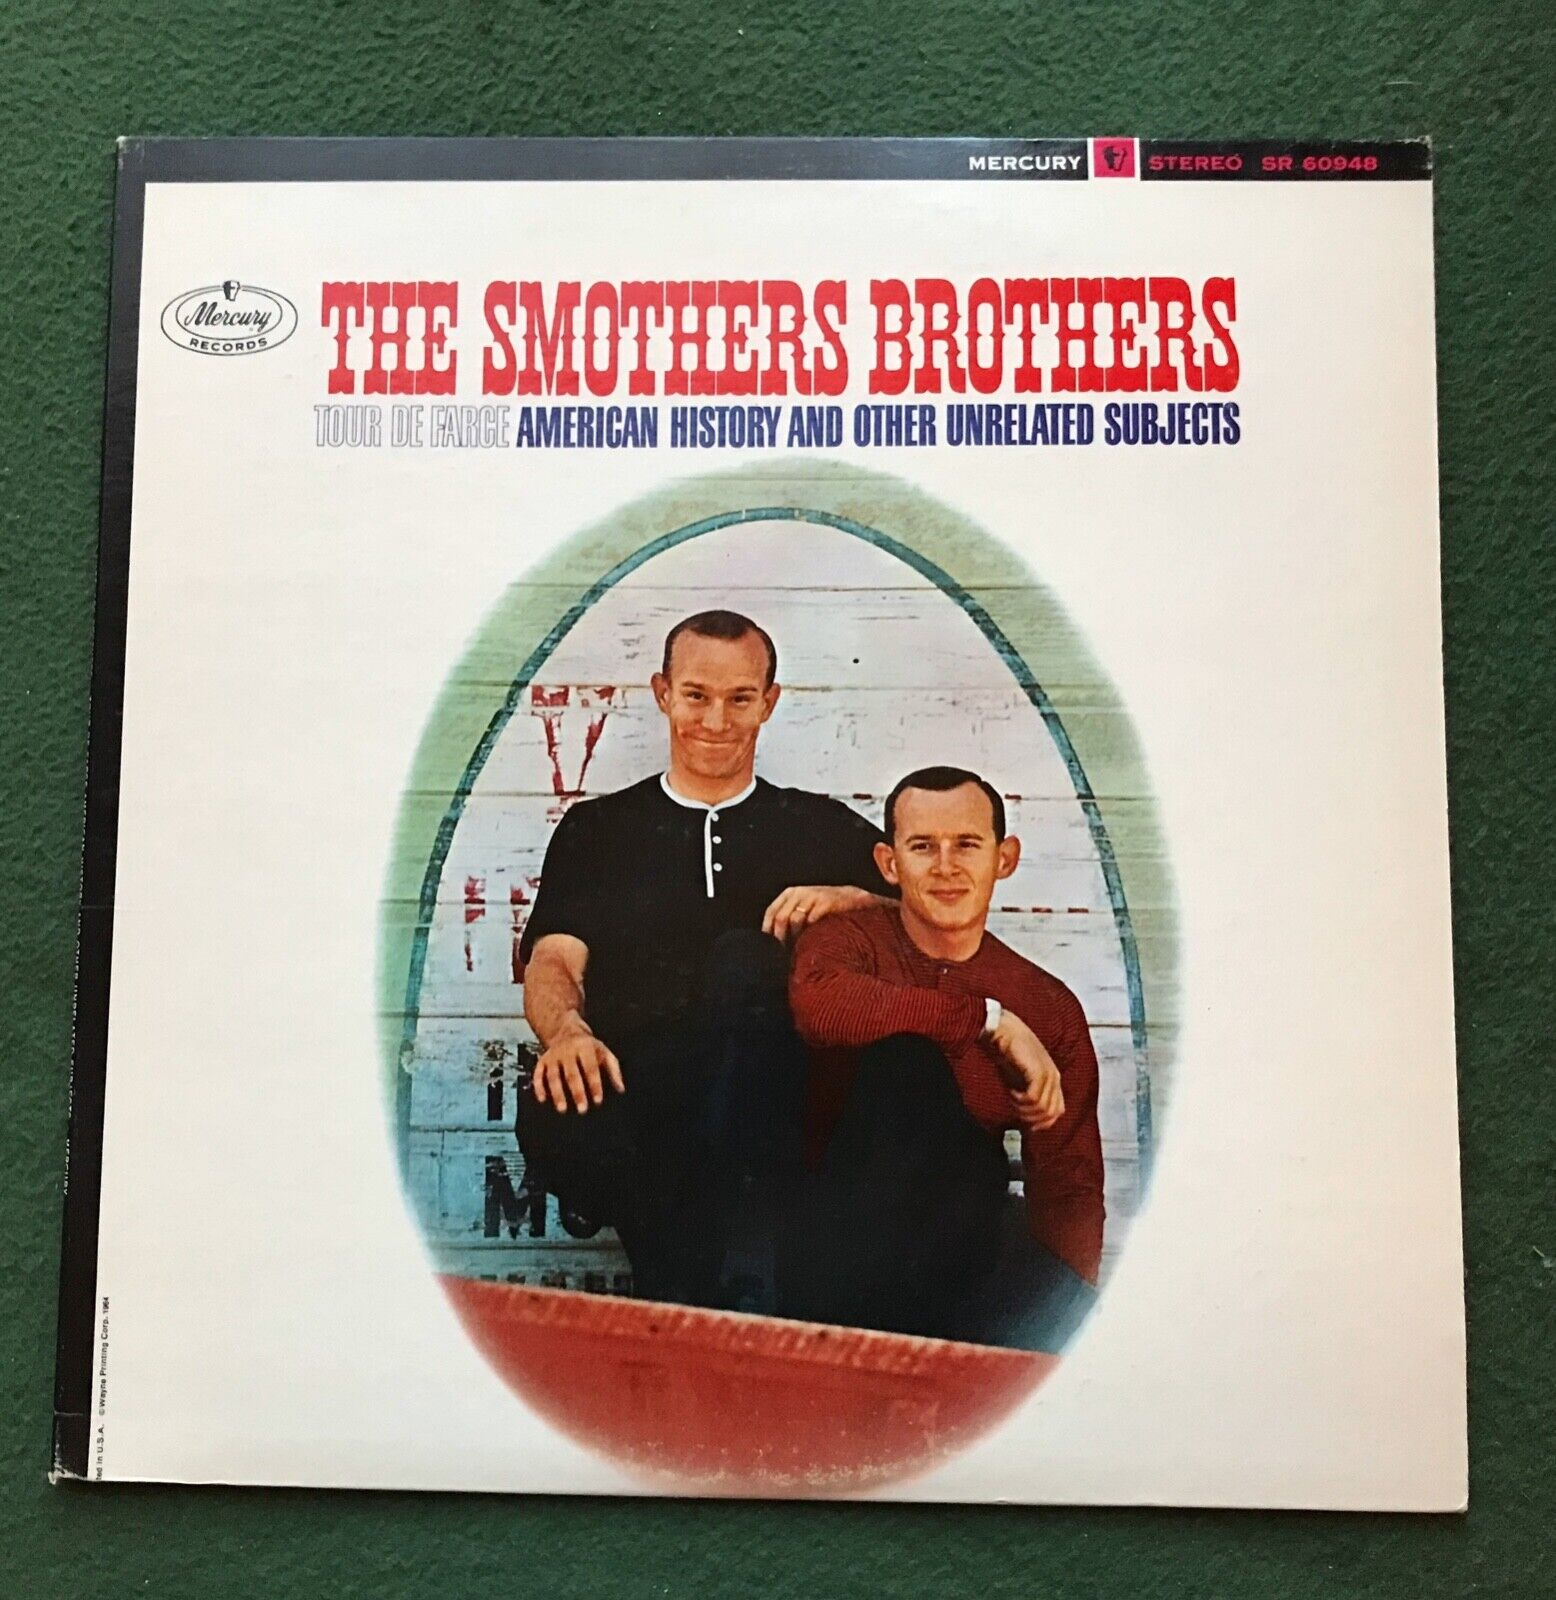 The Smothers Brothers Tour De Farce American History Album LP Record Mercury - $7.00